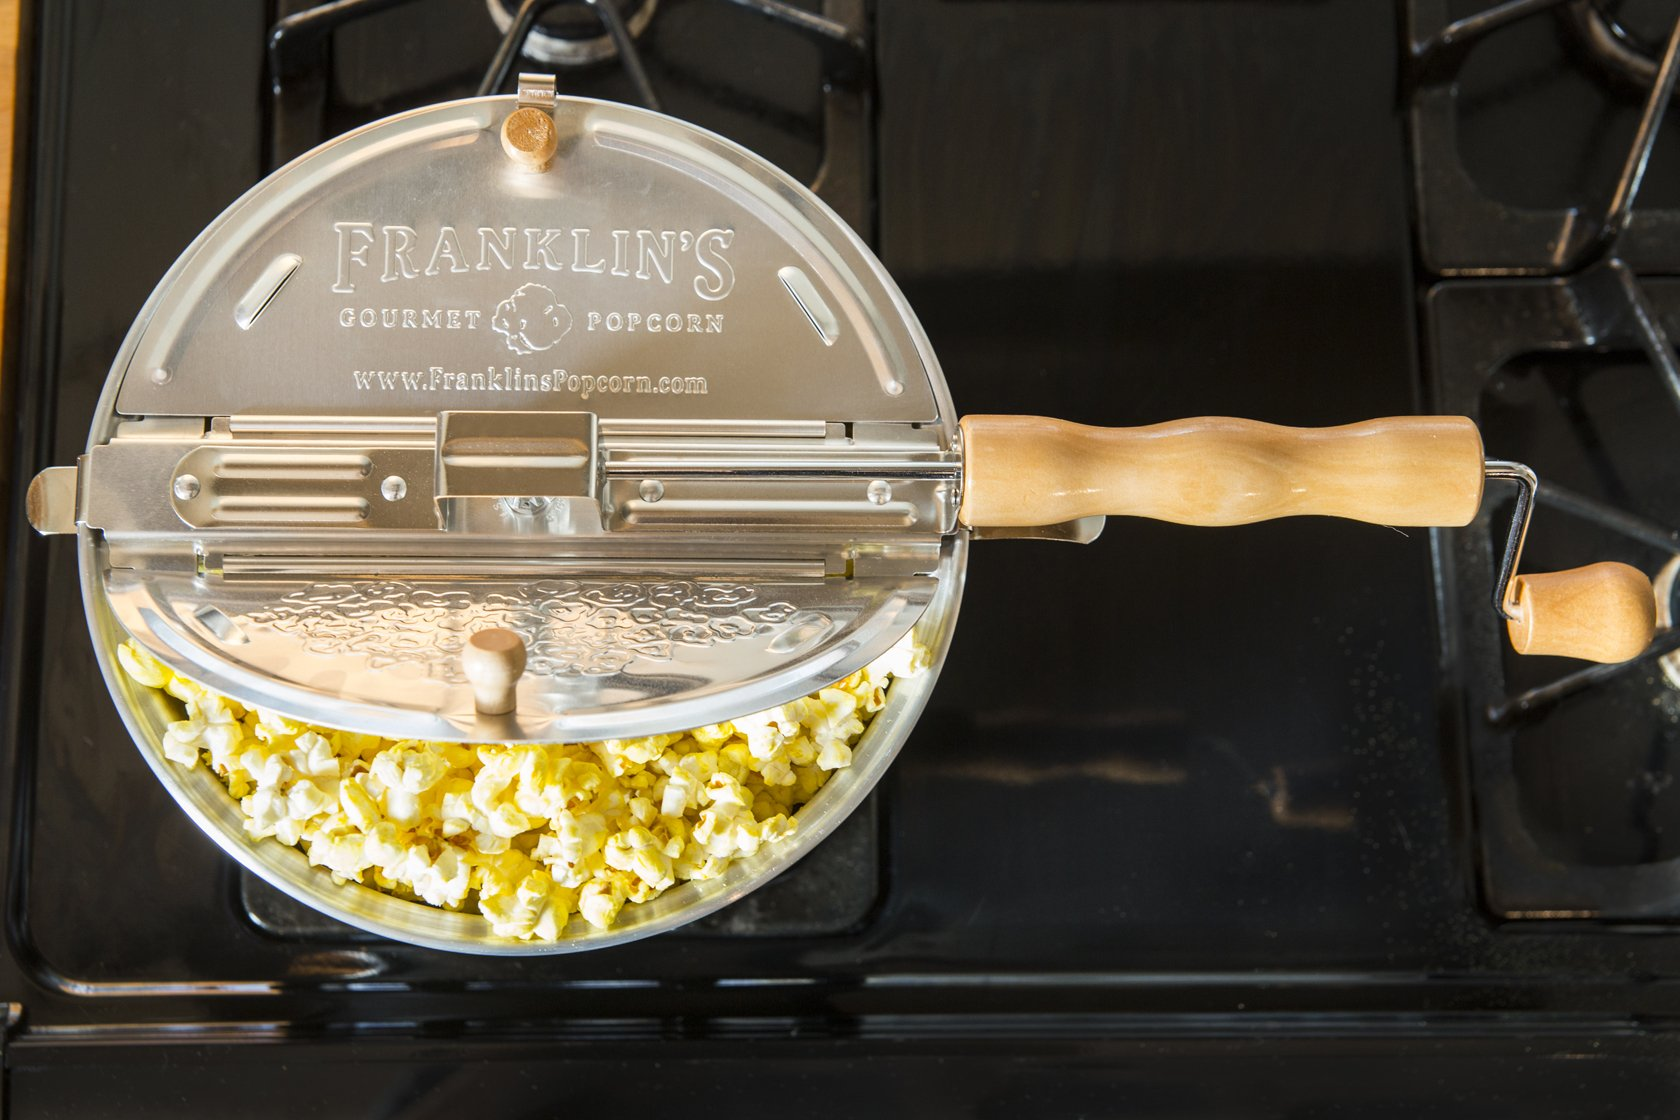 Franklin's Organic Popping Corn (7 lbs). Make Movie Theater Popcorn at Home. by Franklin's Gourmet Popcorn (Image #8)